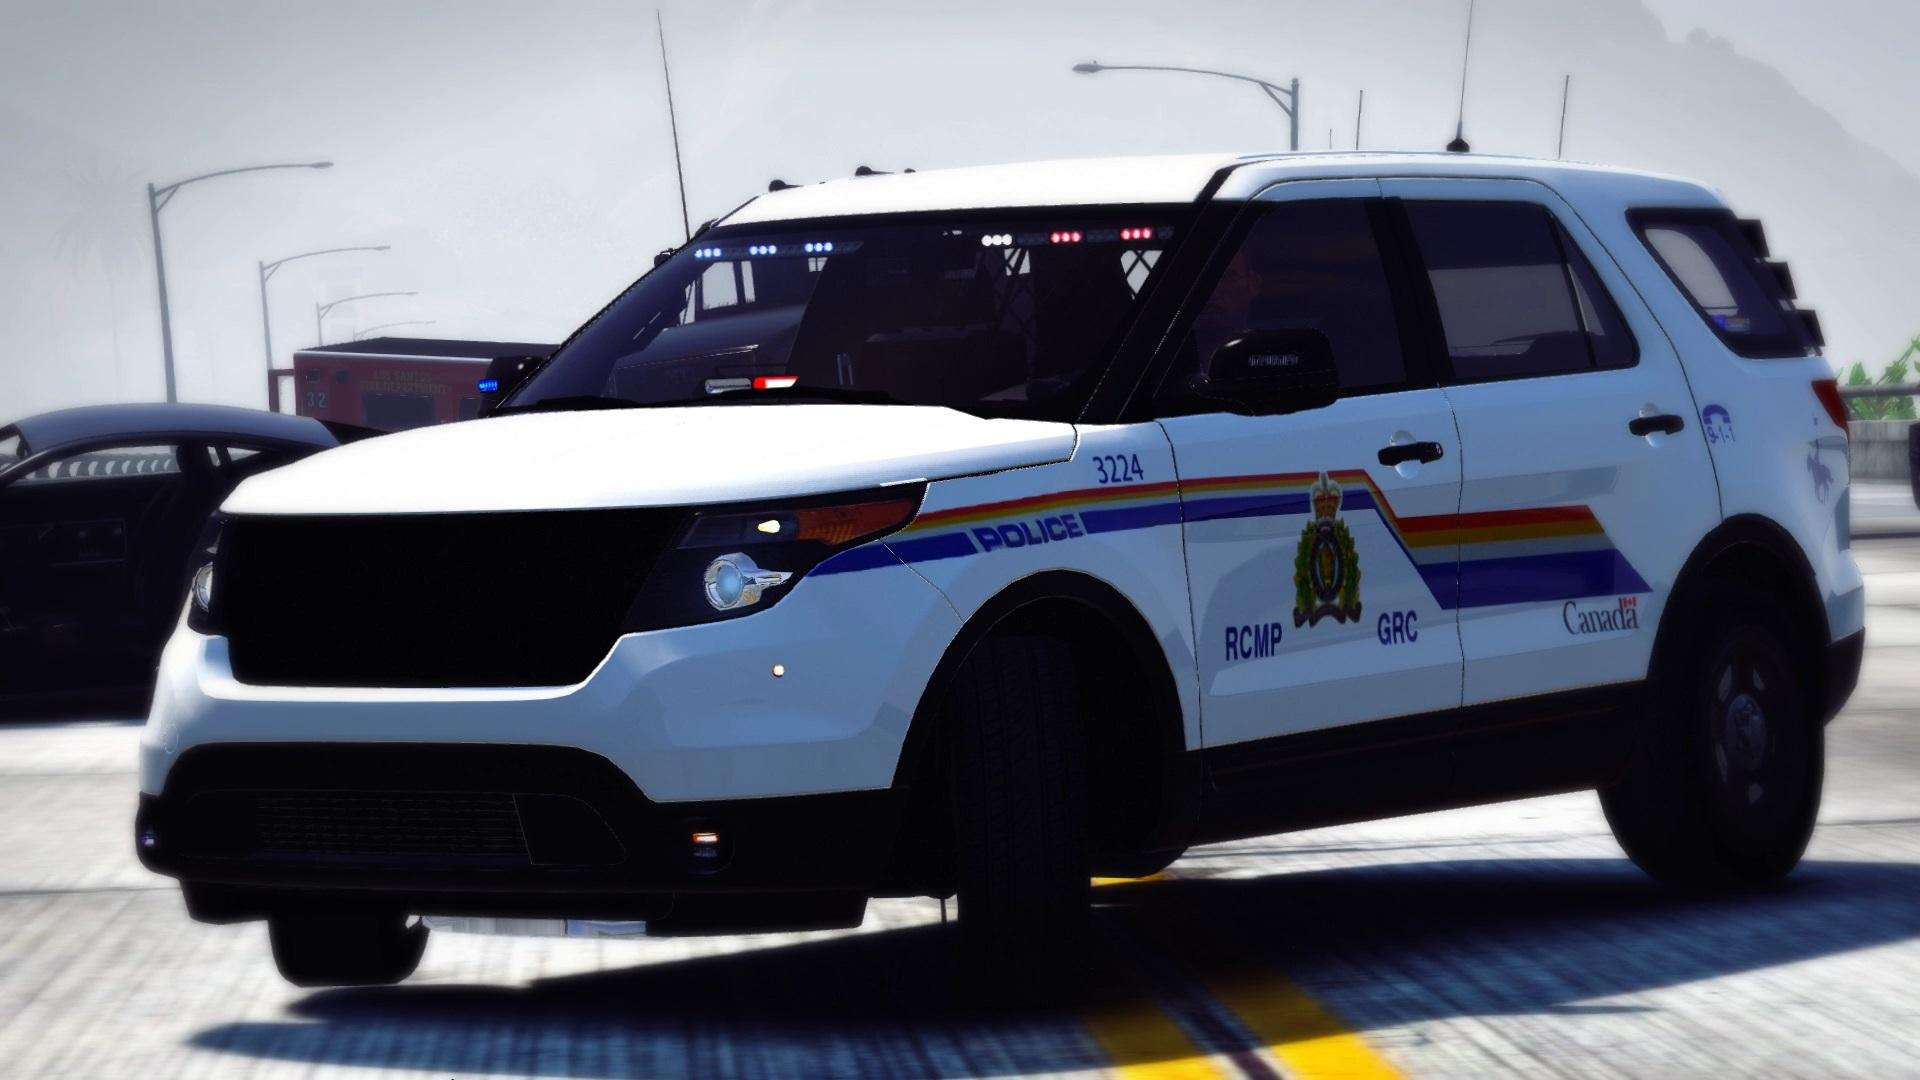 Rcmp Skin For Fpiu Gta5 Mods Com